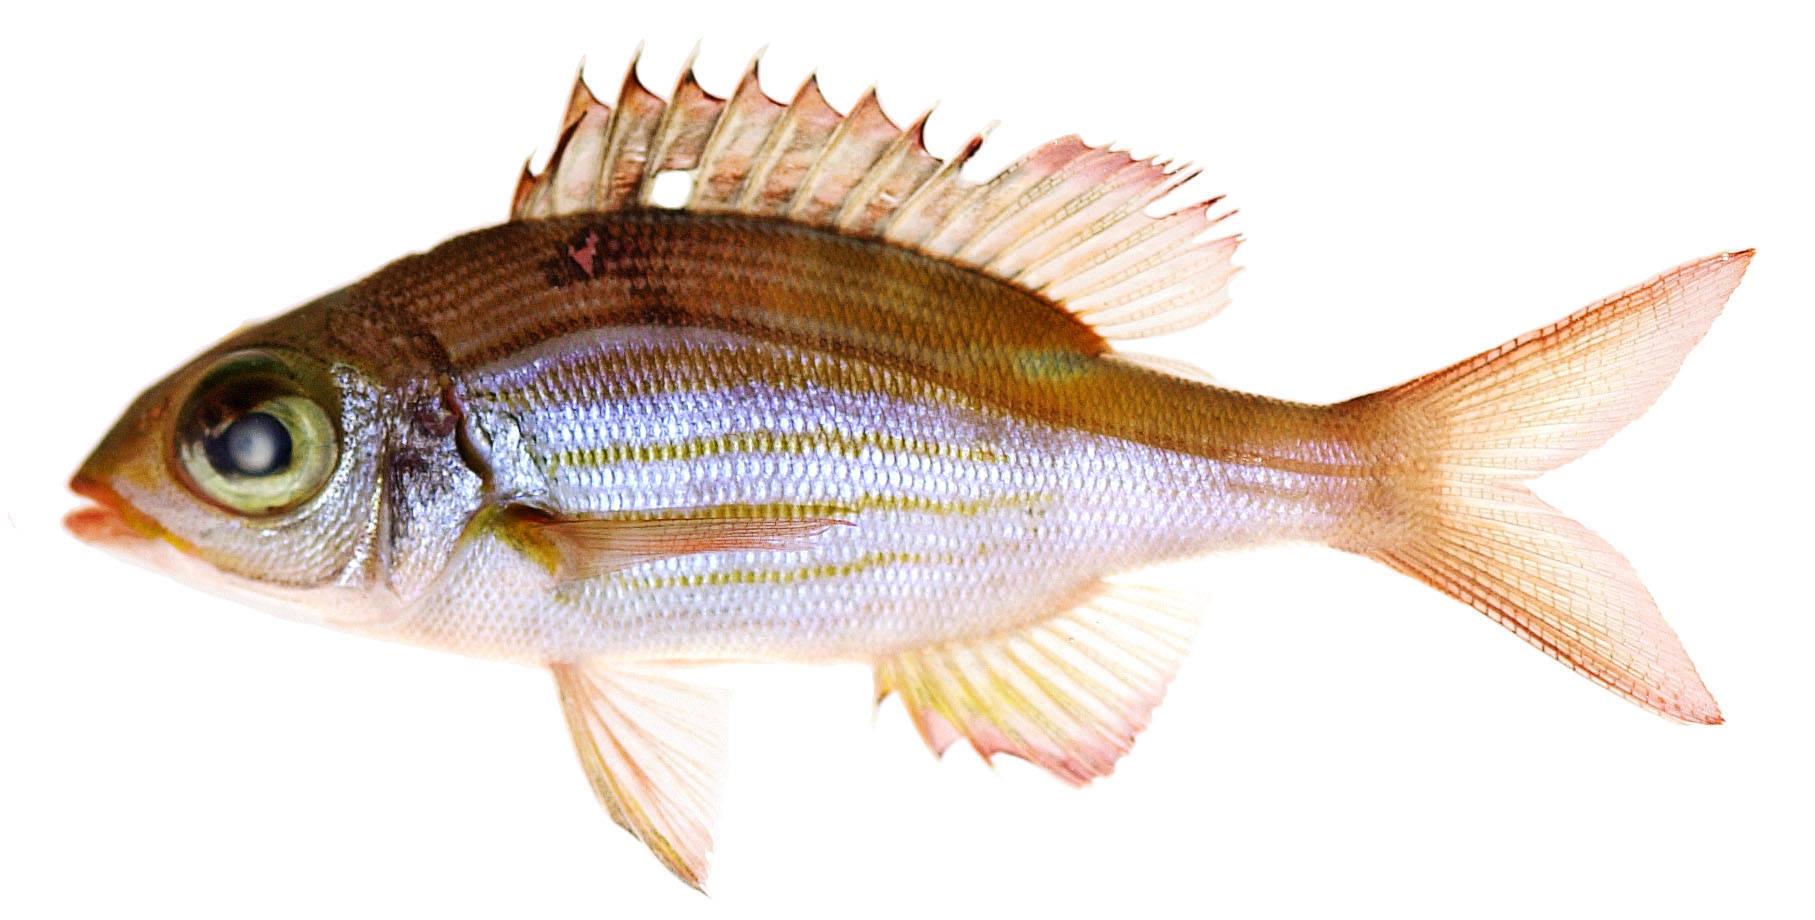 Image of Glowfish